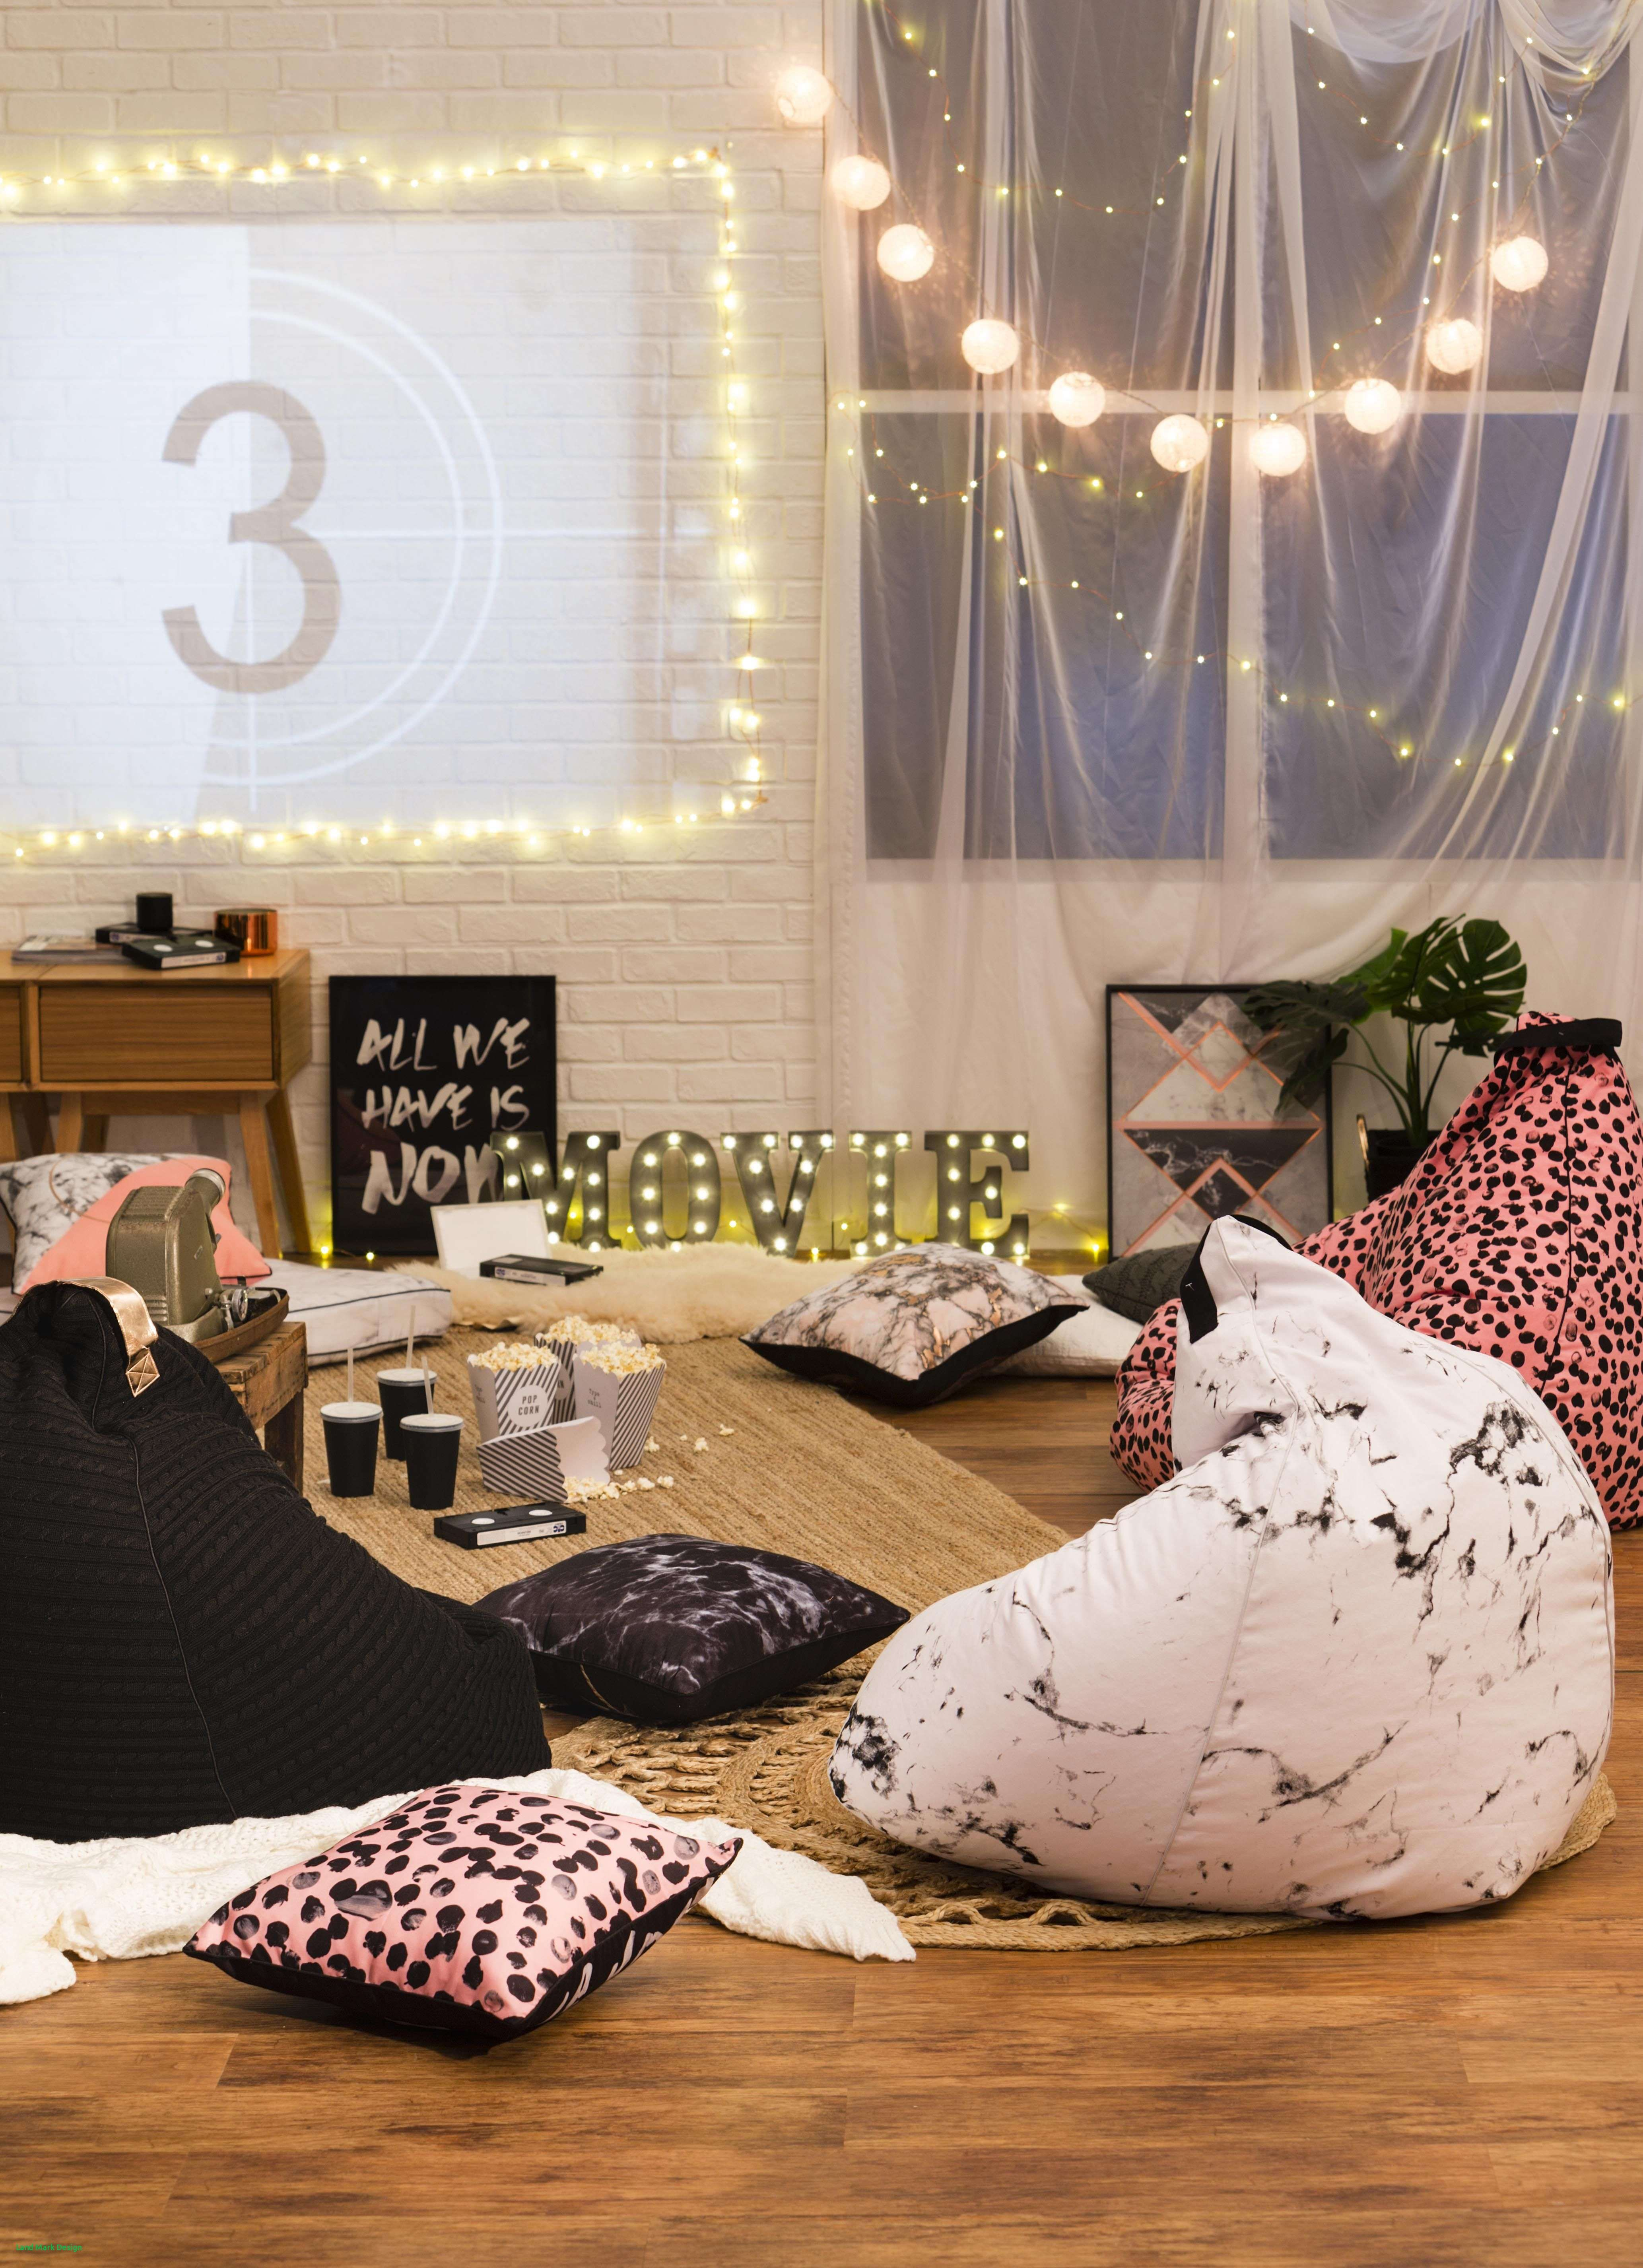 Hang Out Room Ideas Design Chill Room Hangout Room Sleepover Room